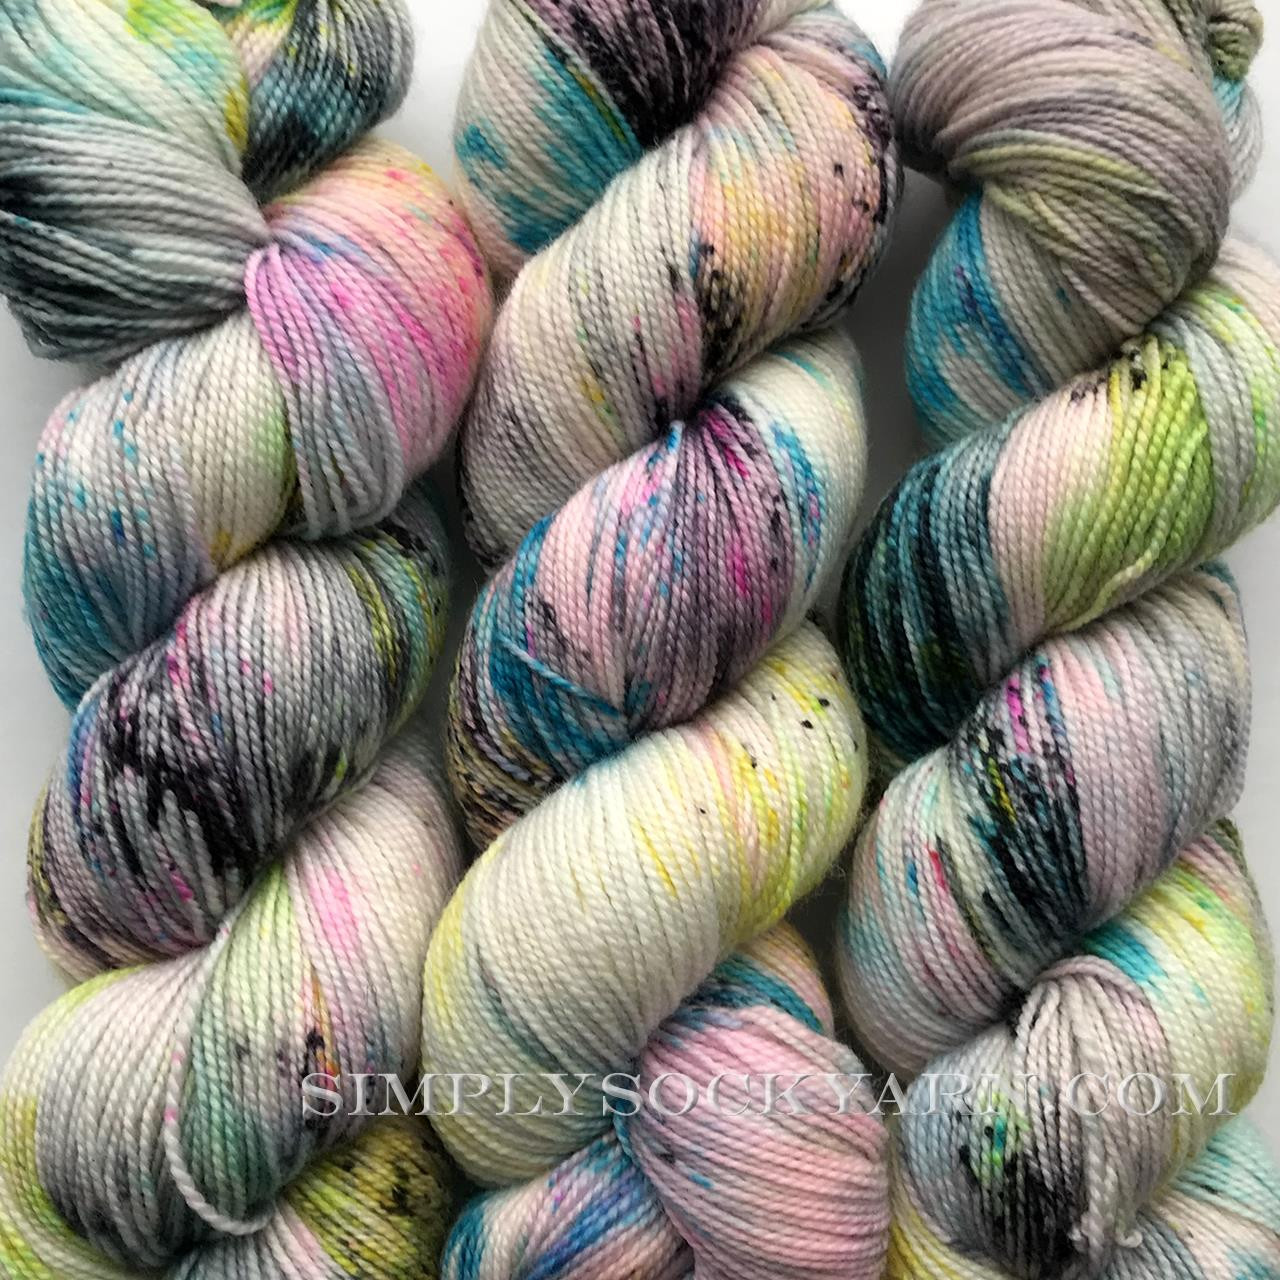 KT Bespeckled Happy Accident -